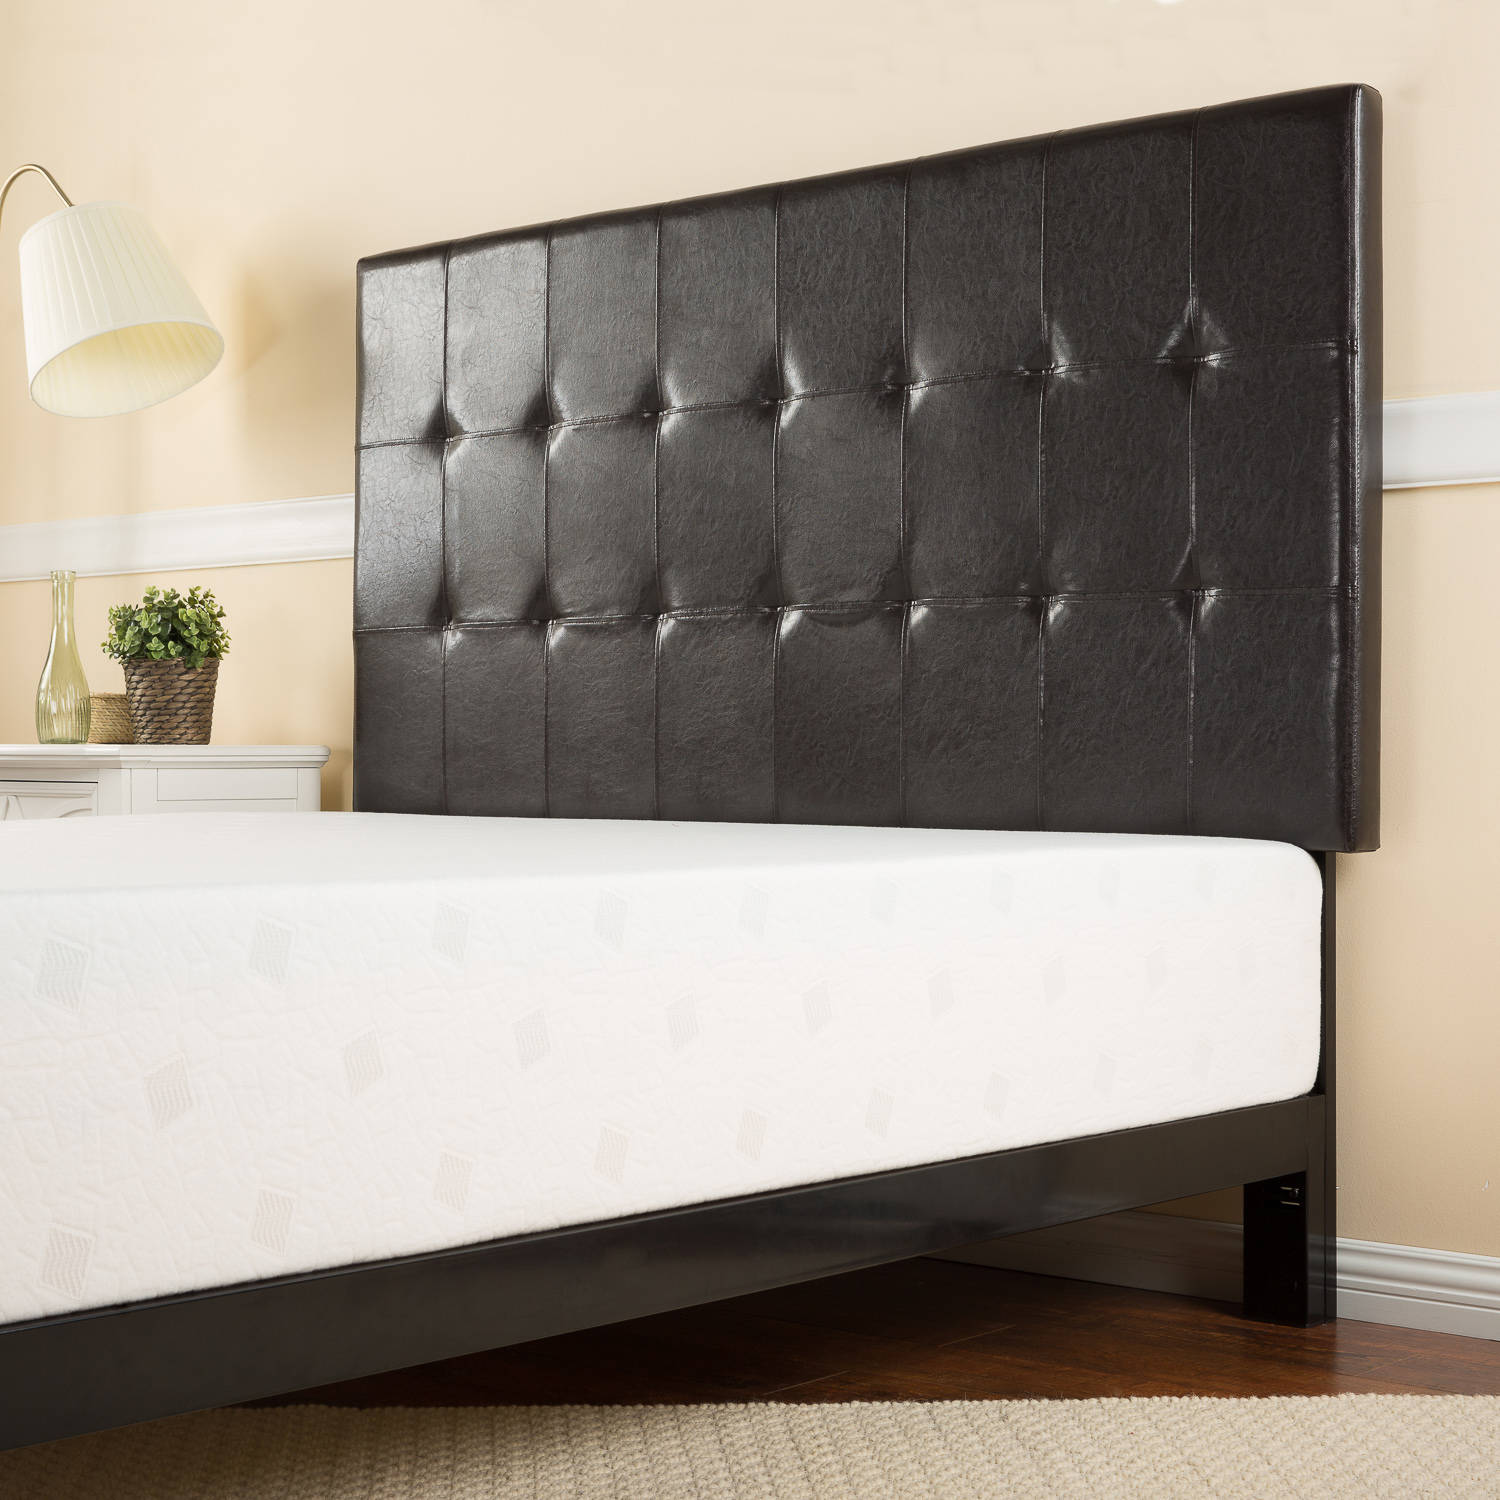 Zinus Faux Leather Square Tufted Full/Queen Headboard, Espresso